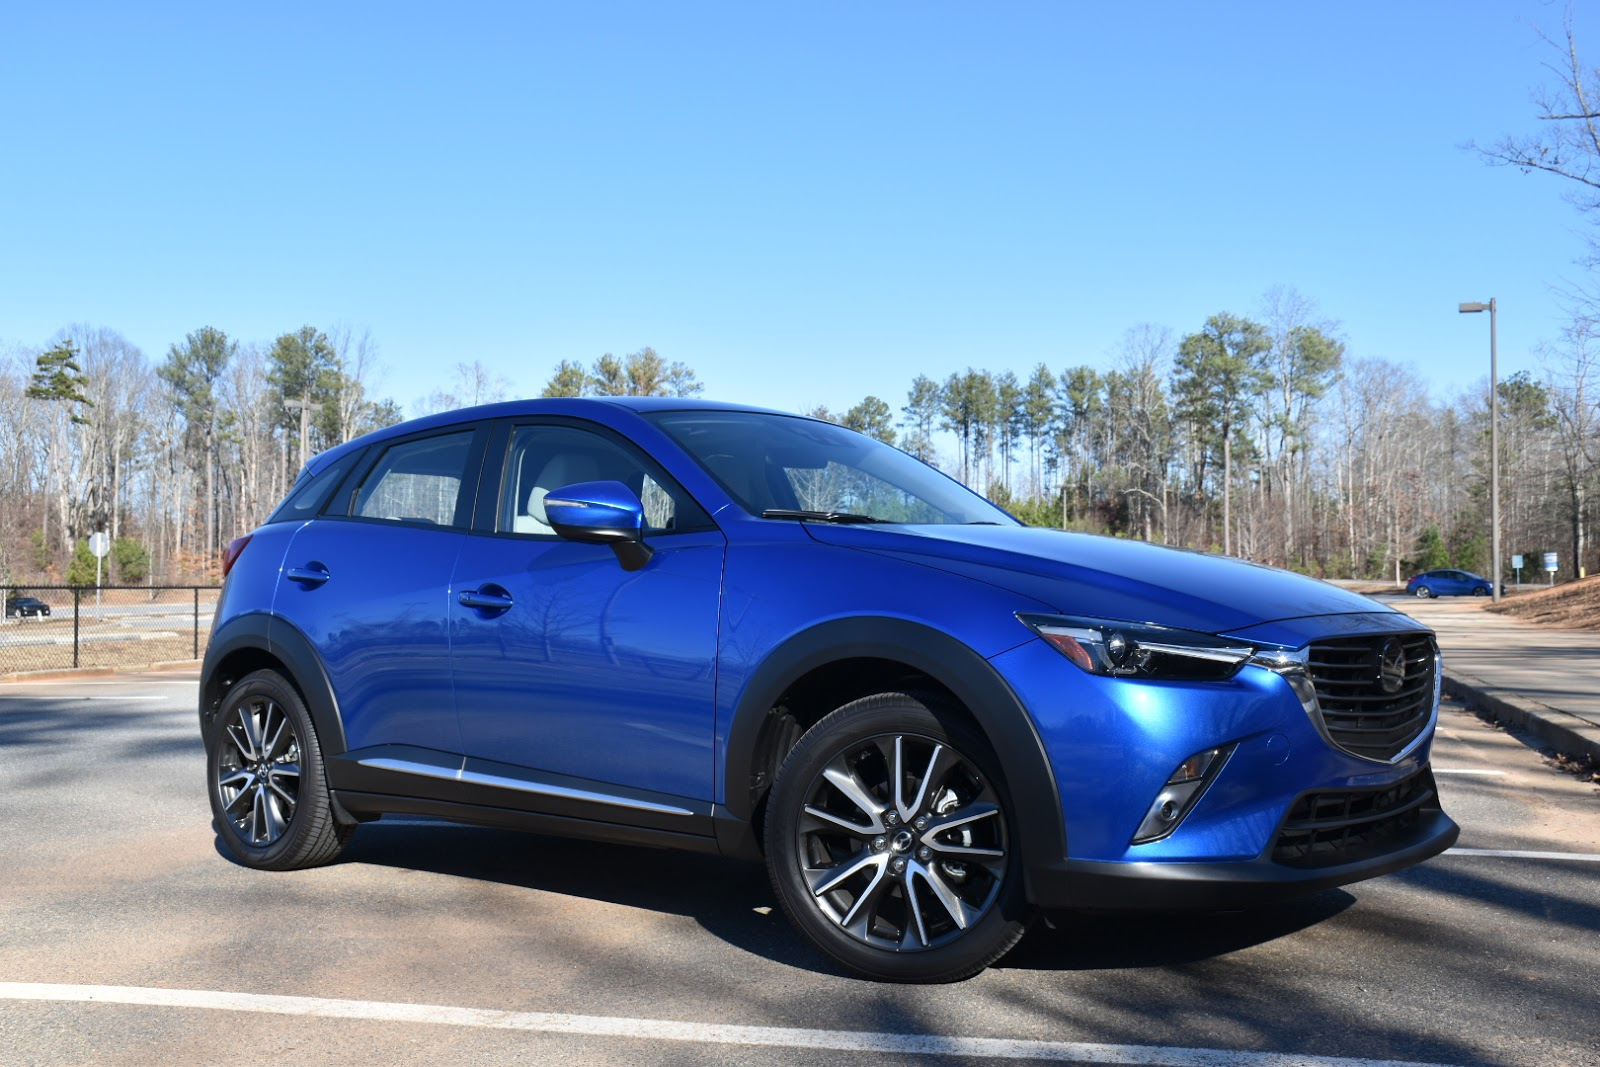 Difference Between Mazda 3 And 6 >> Road Trip in Small Car: 2017 Mazda CX-3